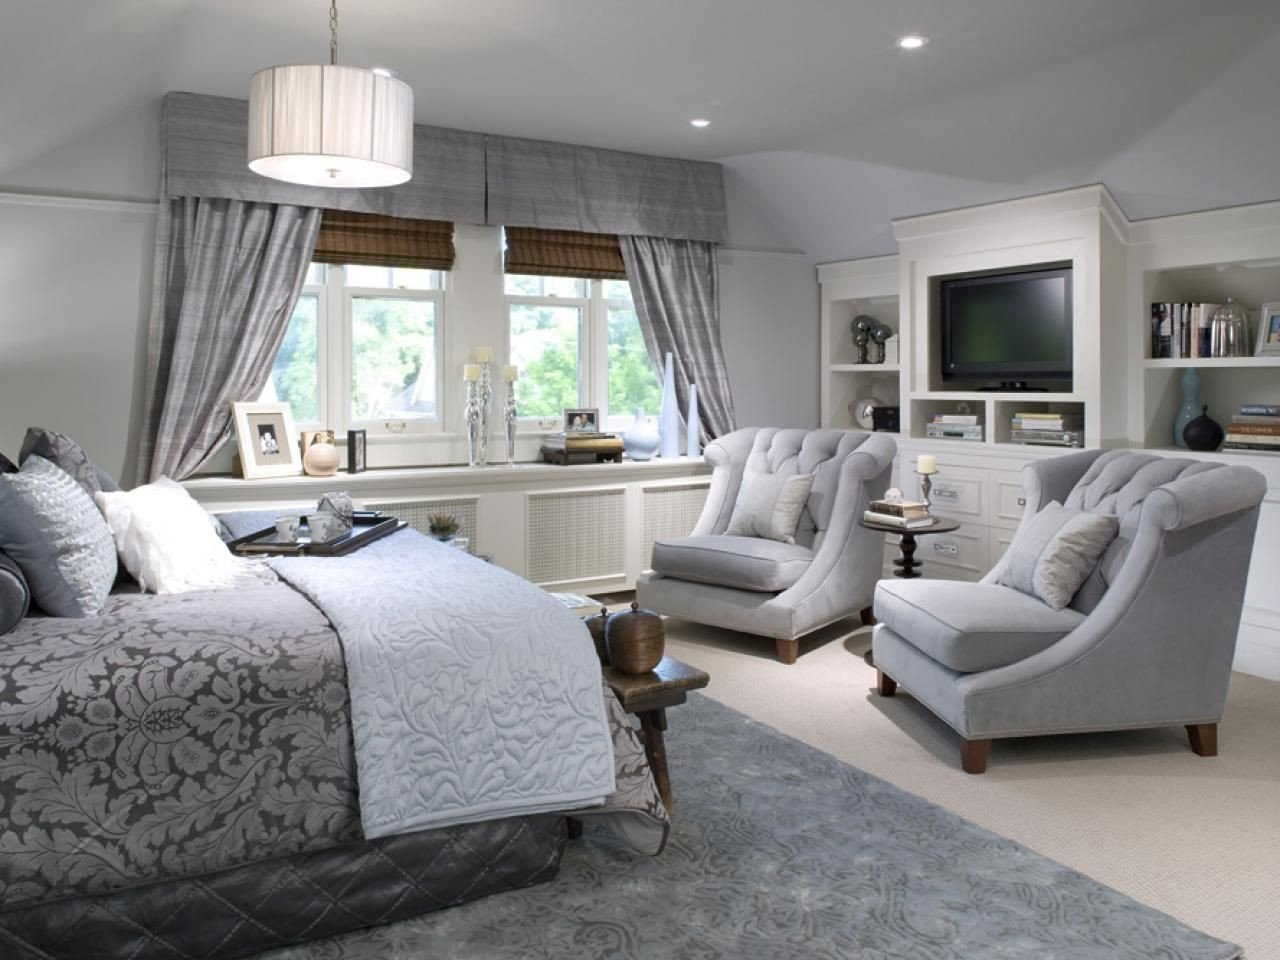 Tan and White Bedroom Fresh I Like This Layout Put the Tv Against the Large Wall and A